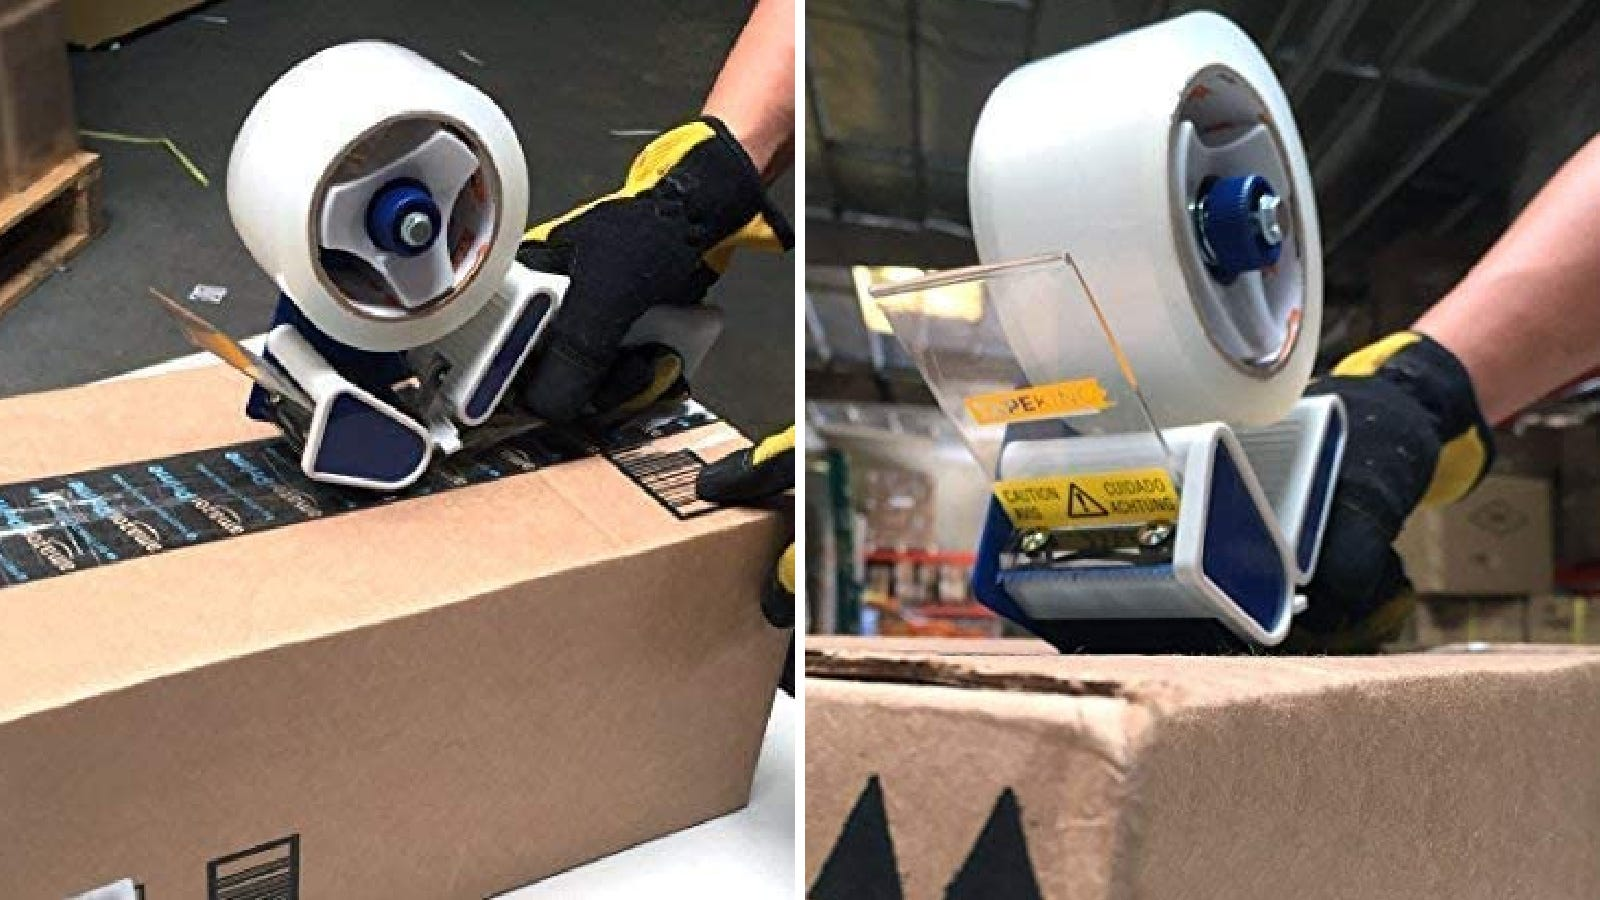 Two images of someone using the Tape King tape dispenser to seal up a box.